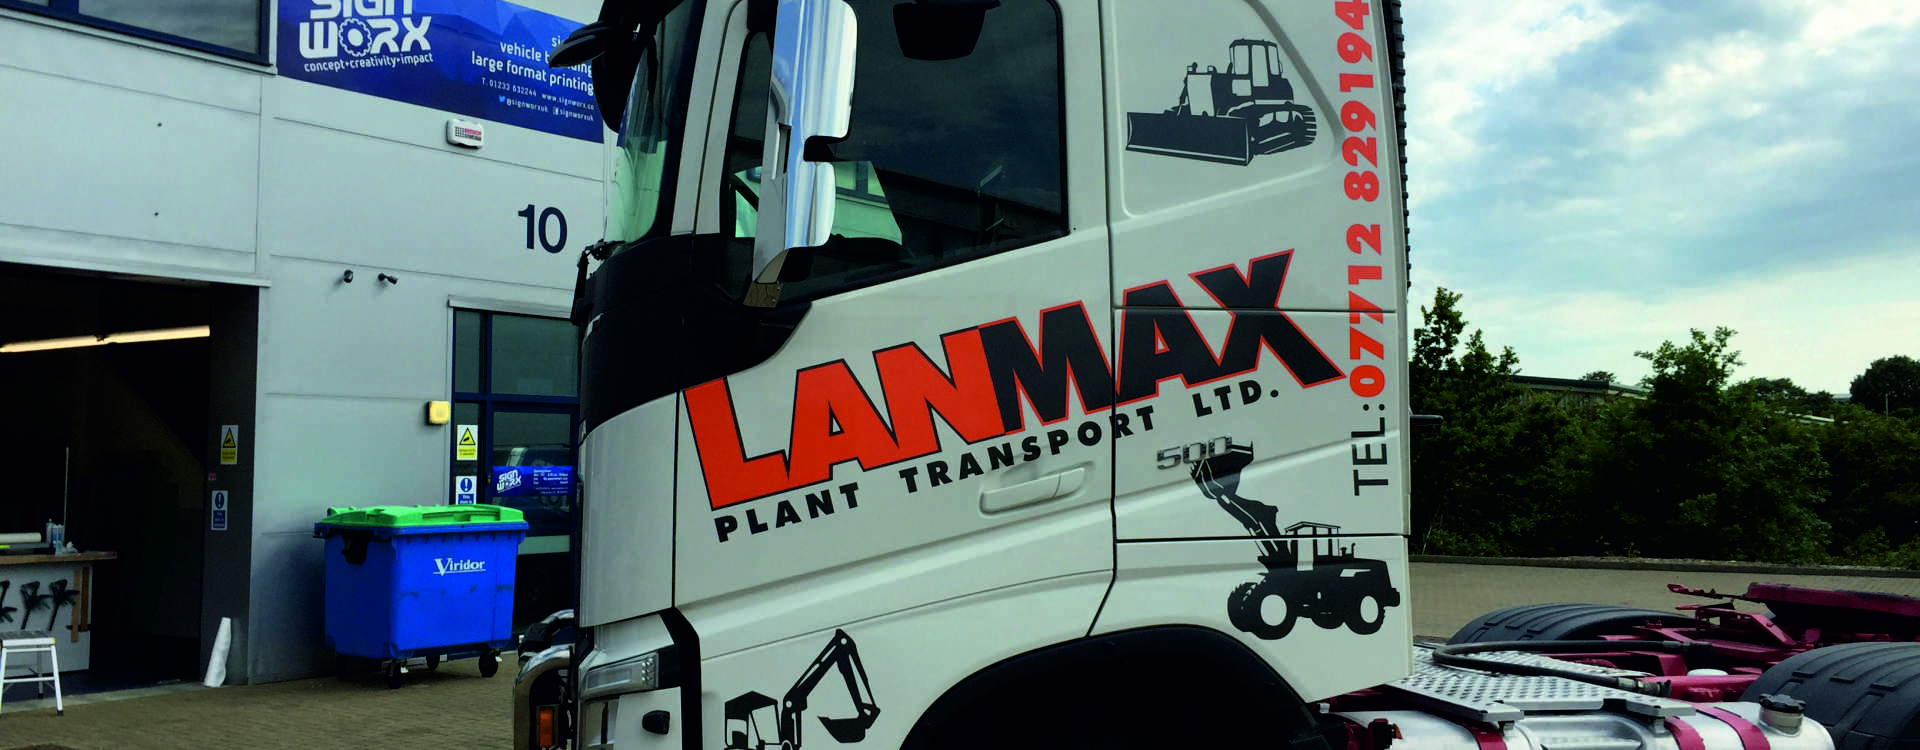 Lanmax Lorry Vinyl Vehicle Wrap